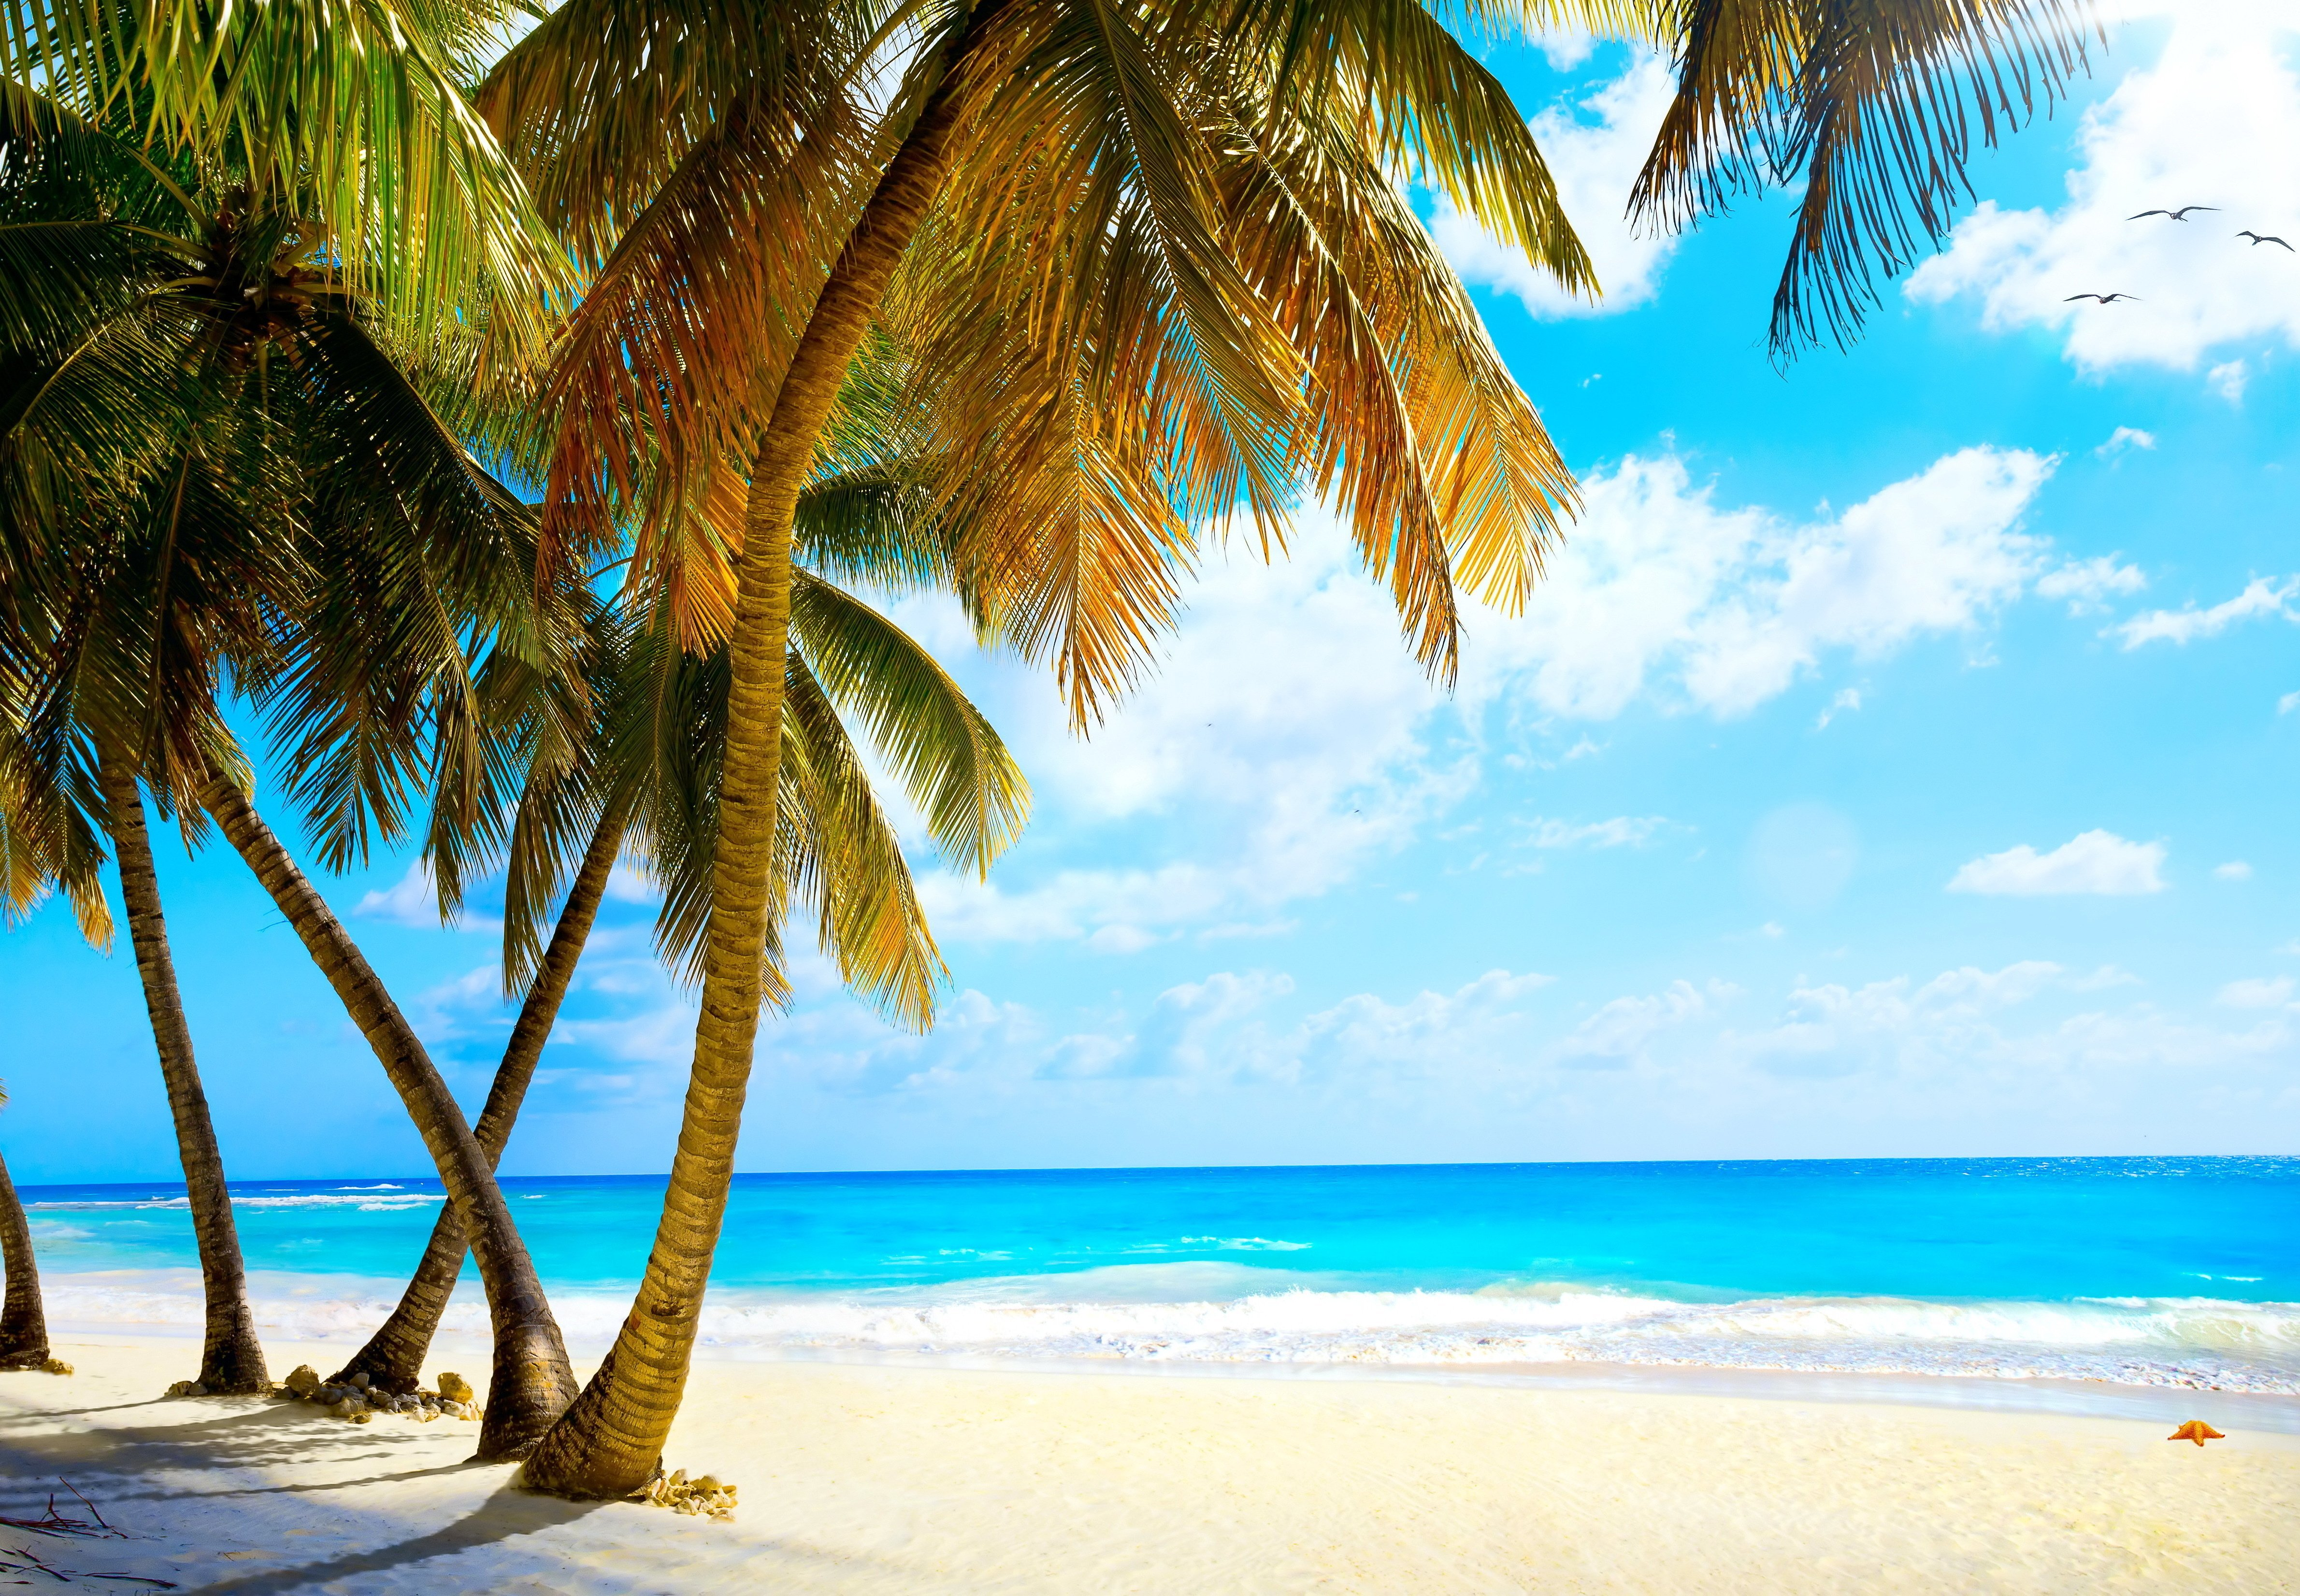 Tropical Beach Paradise Backgrounds: Exotic Beach Resorts Wallpaper